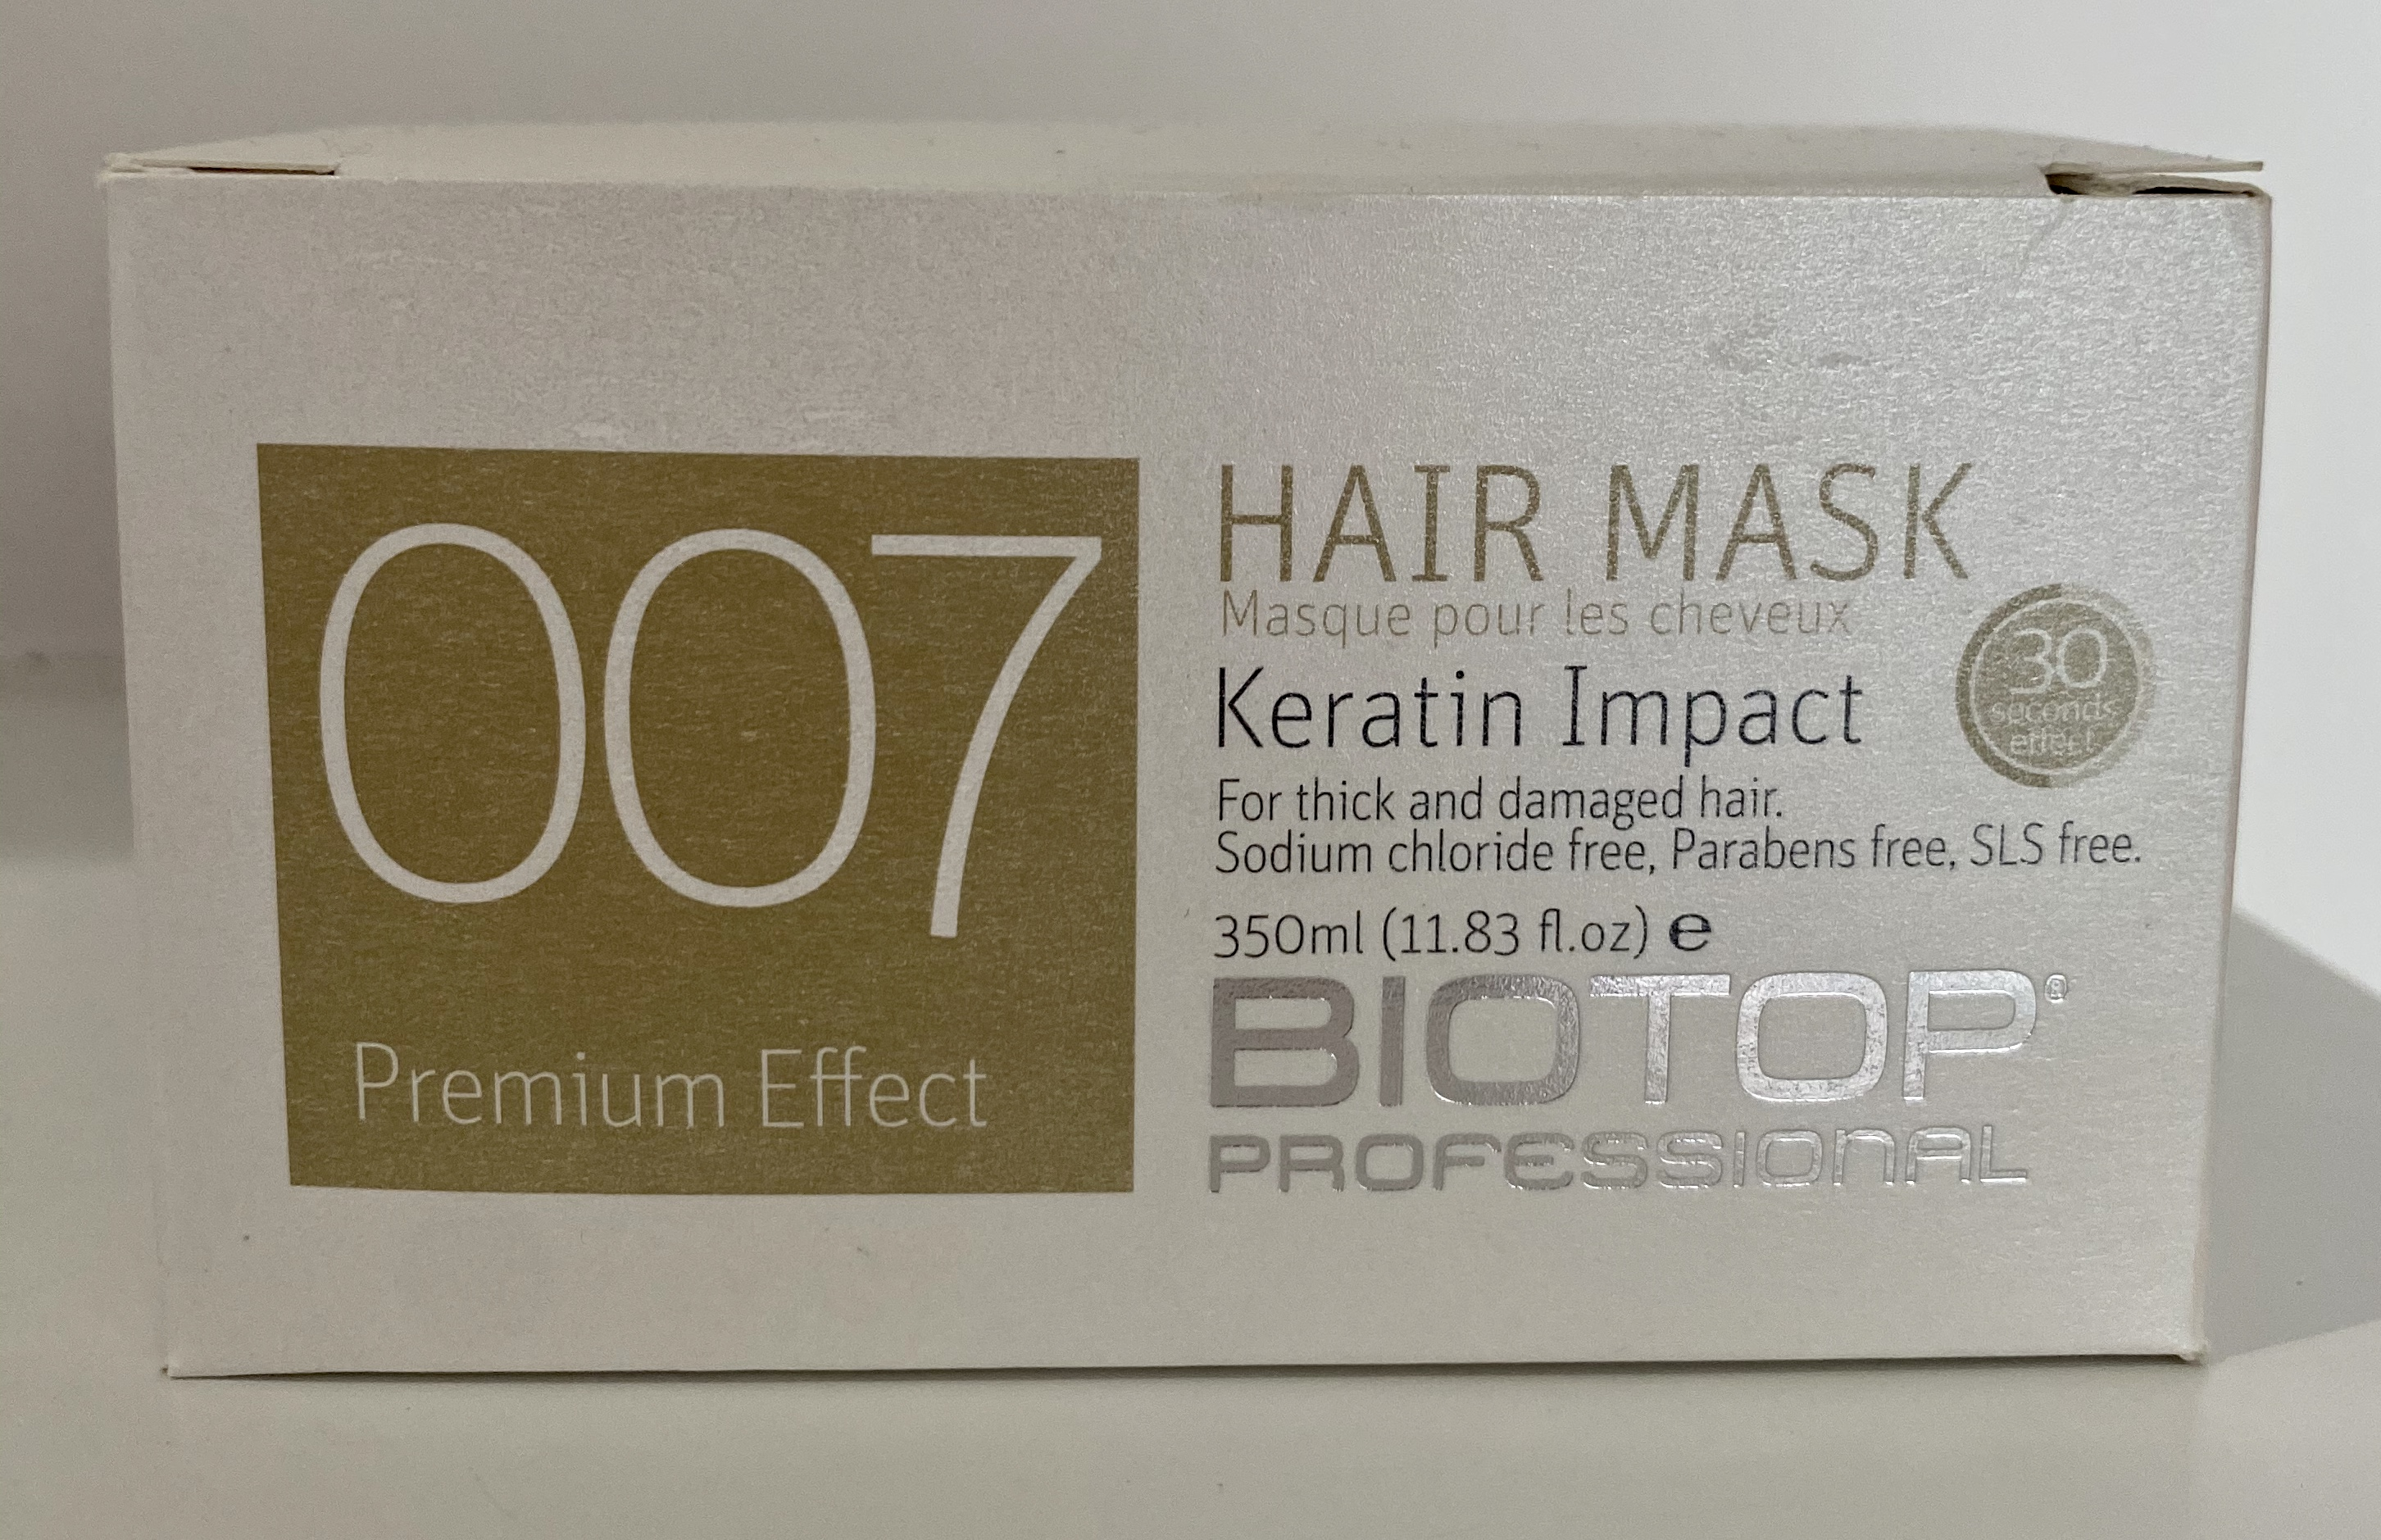 007 Keratin Hair Mask